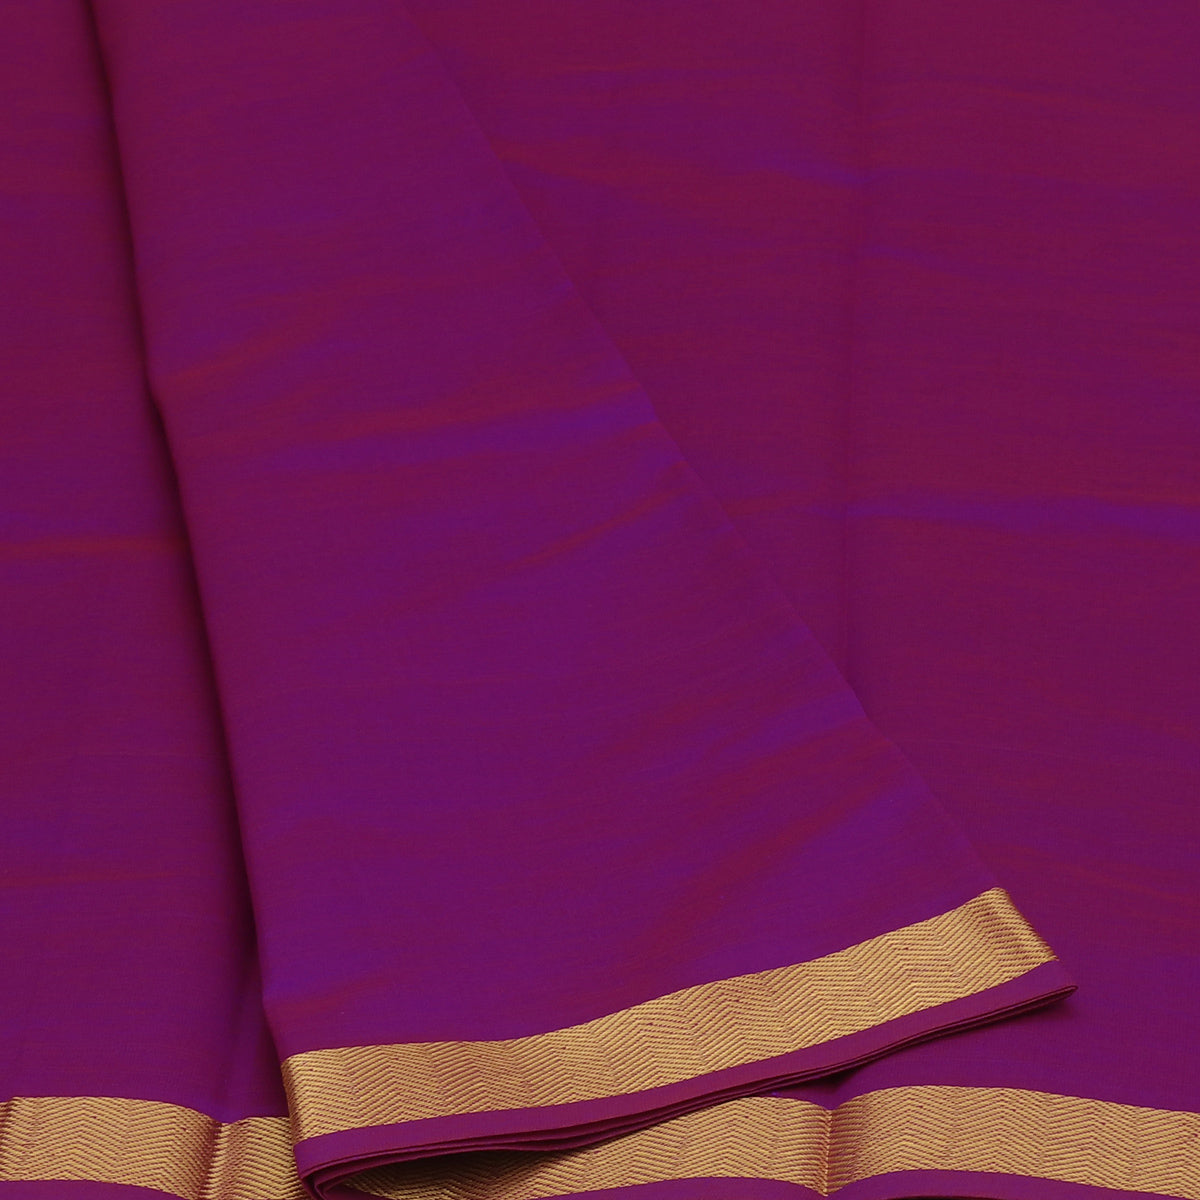 Blended Cotton Saree Magenta and Pine Green with Wave zari border 9 yards